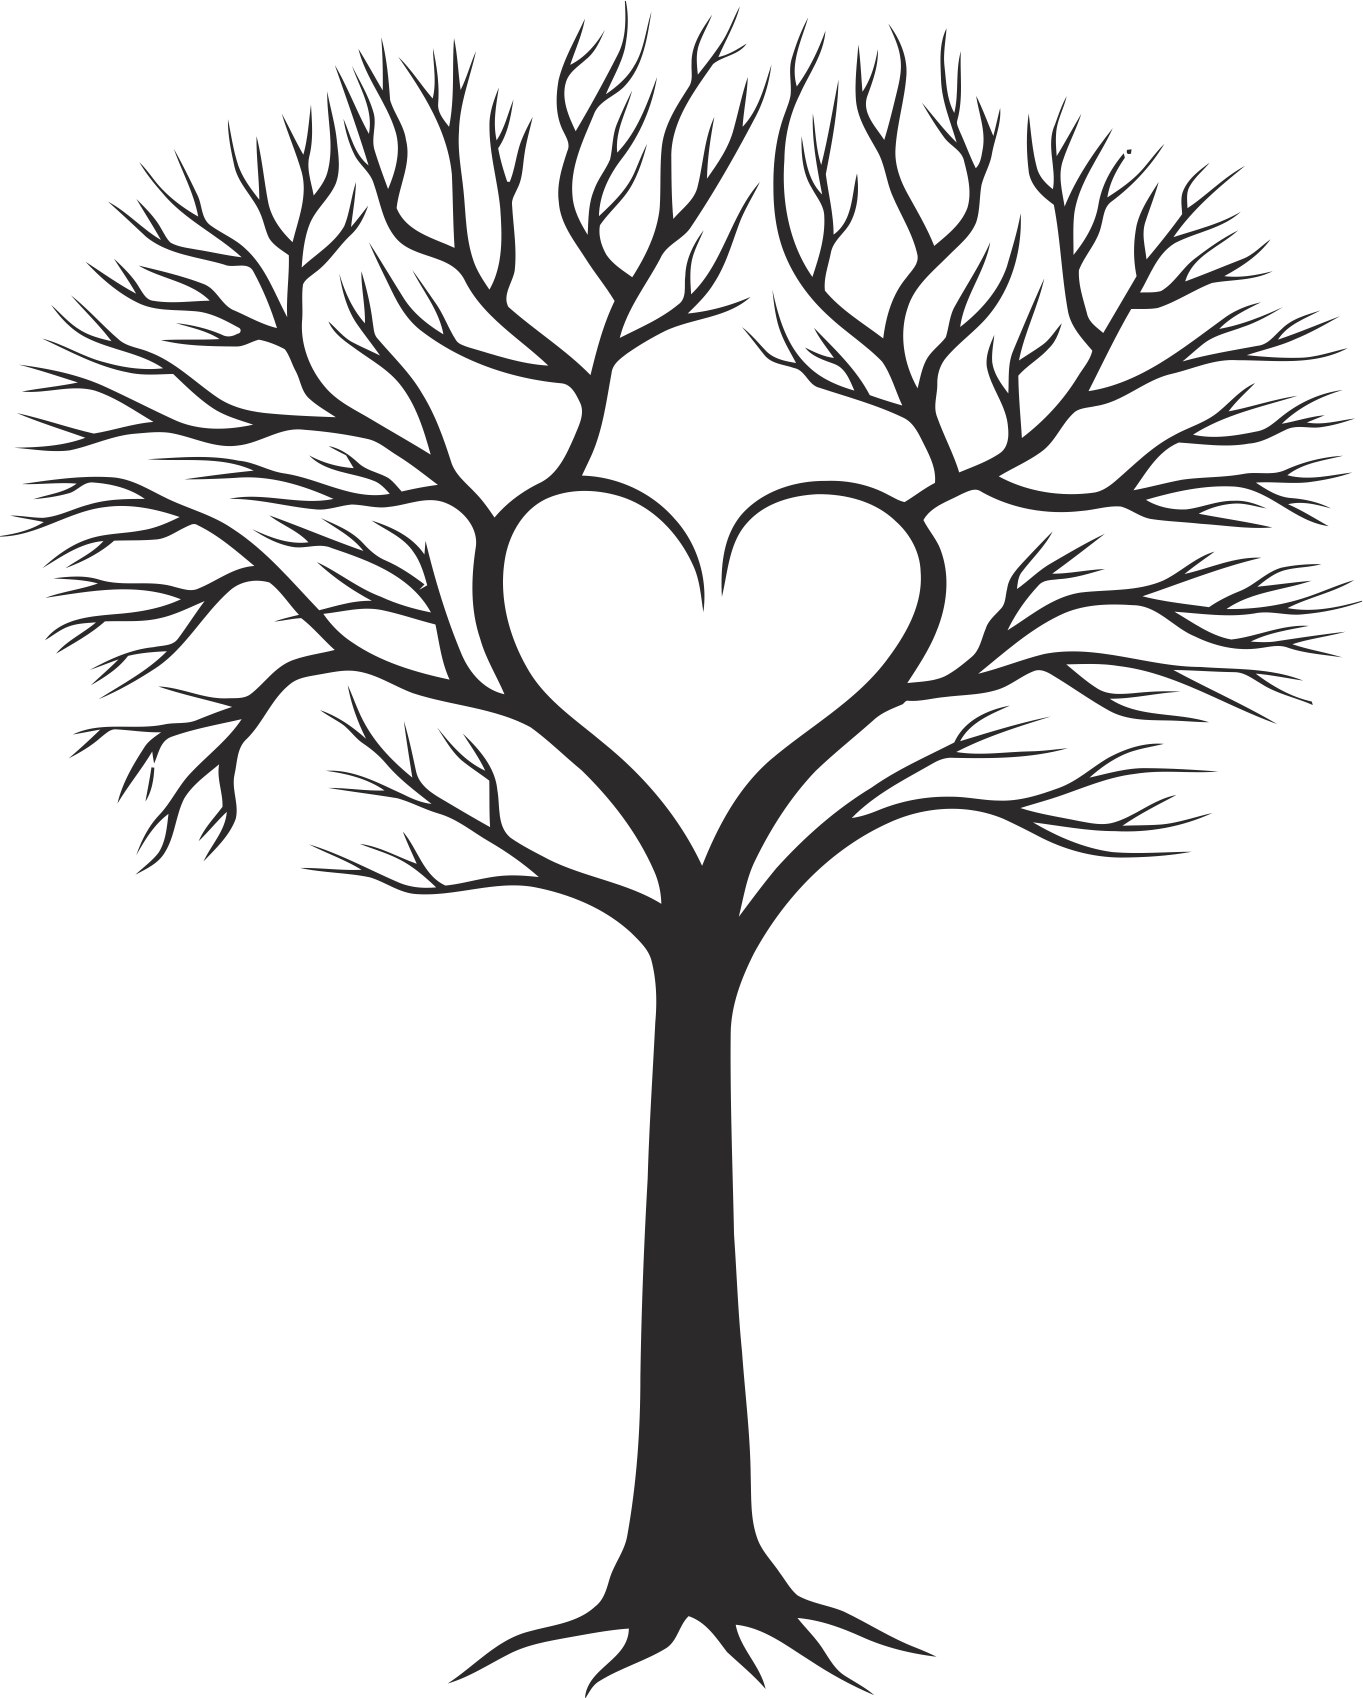 Family Tree With Heart Free Vector cdr Download.